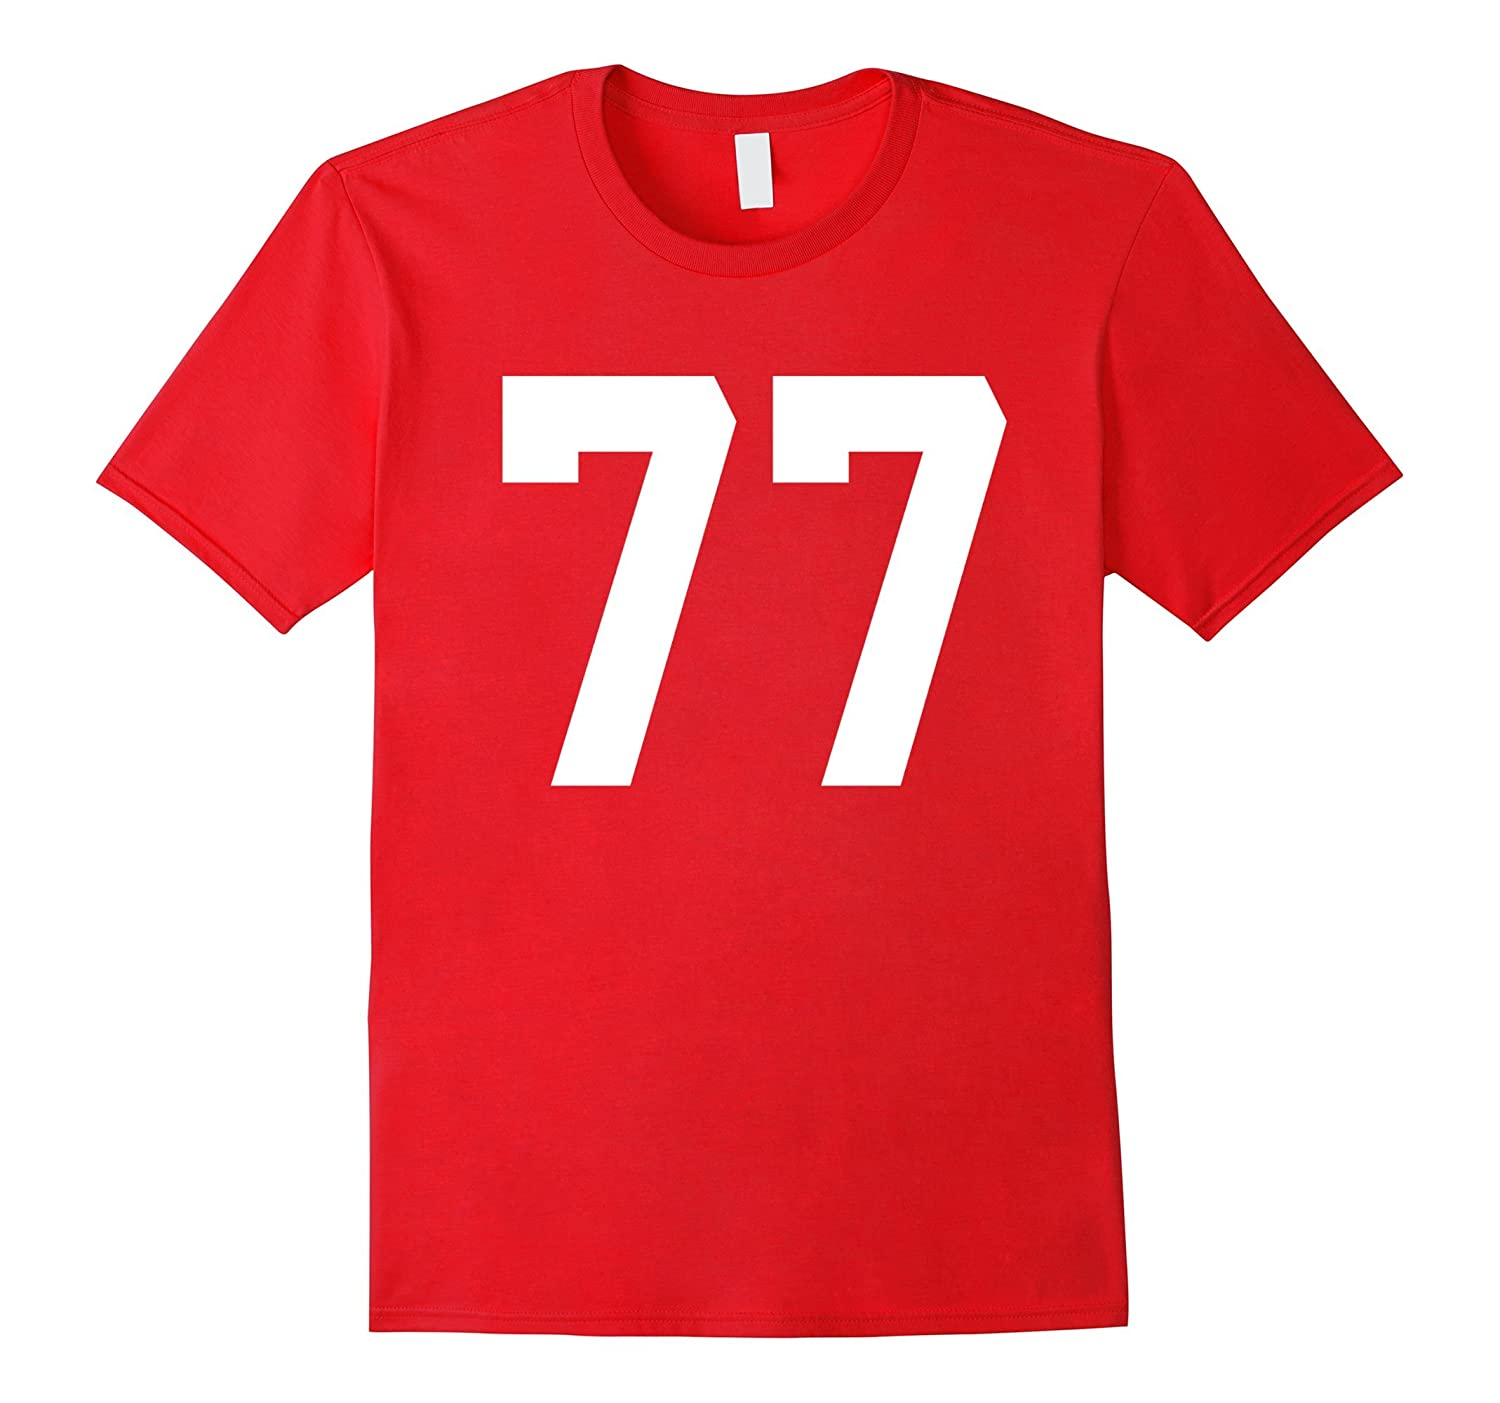 #77 Team Sports Jersey Number Front & Back Player / Fan Tee-TH